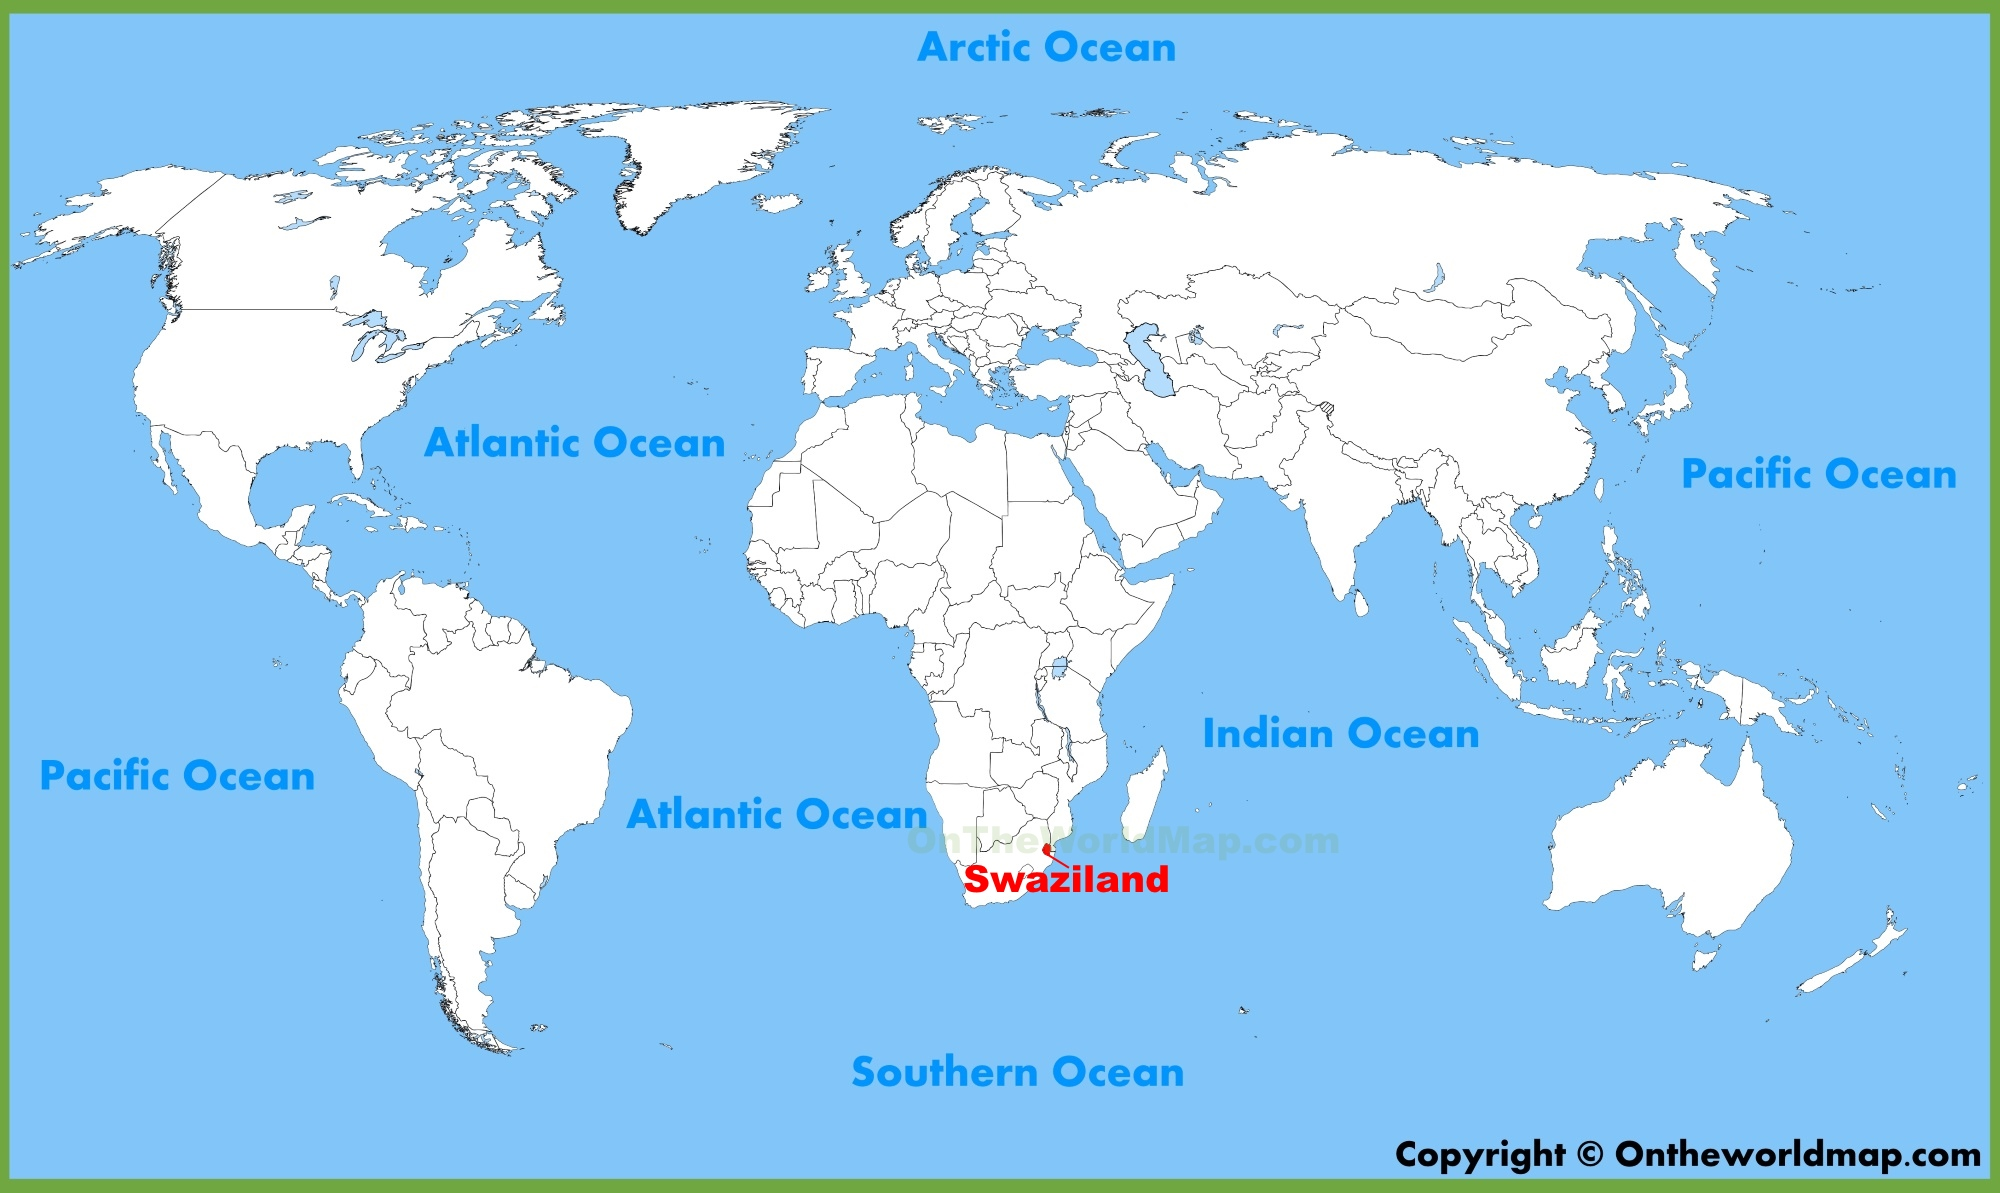 Swaziland location on the World Map